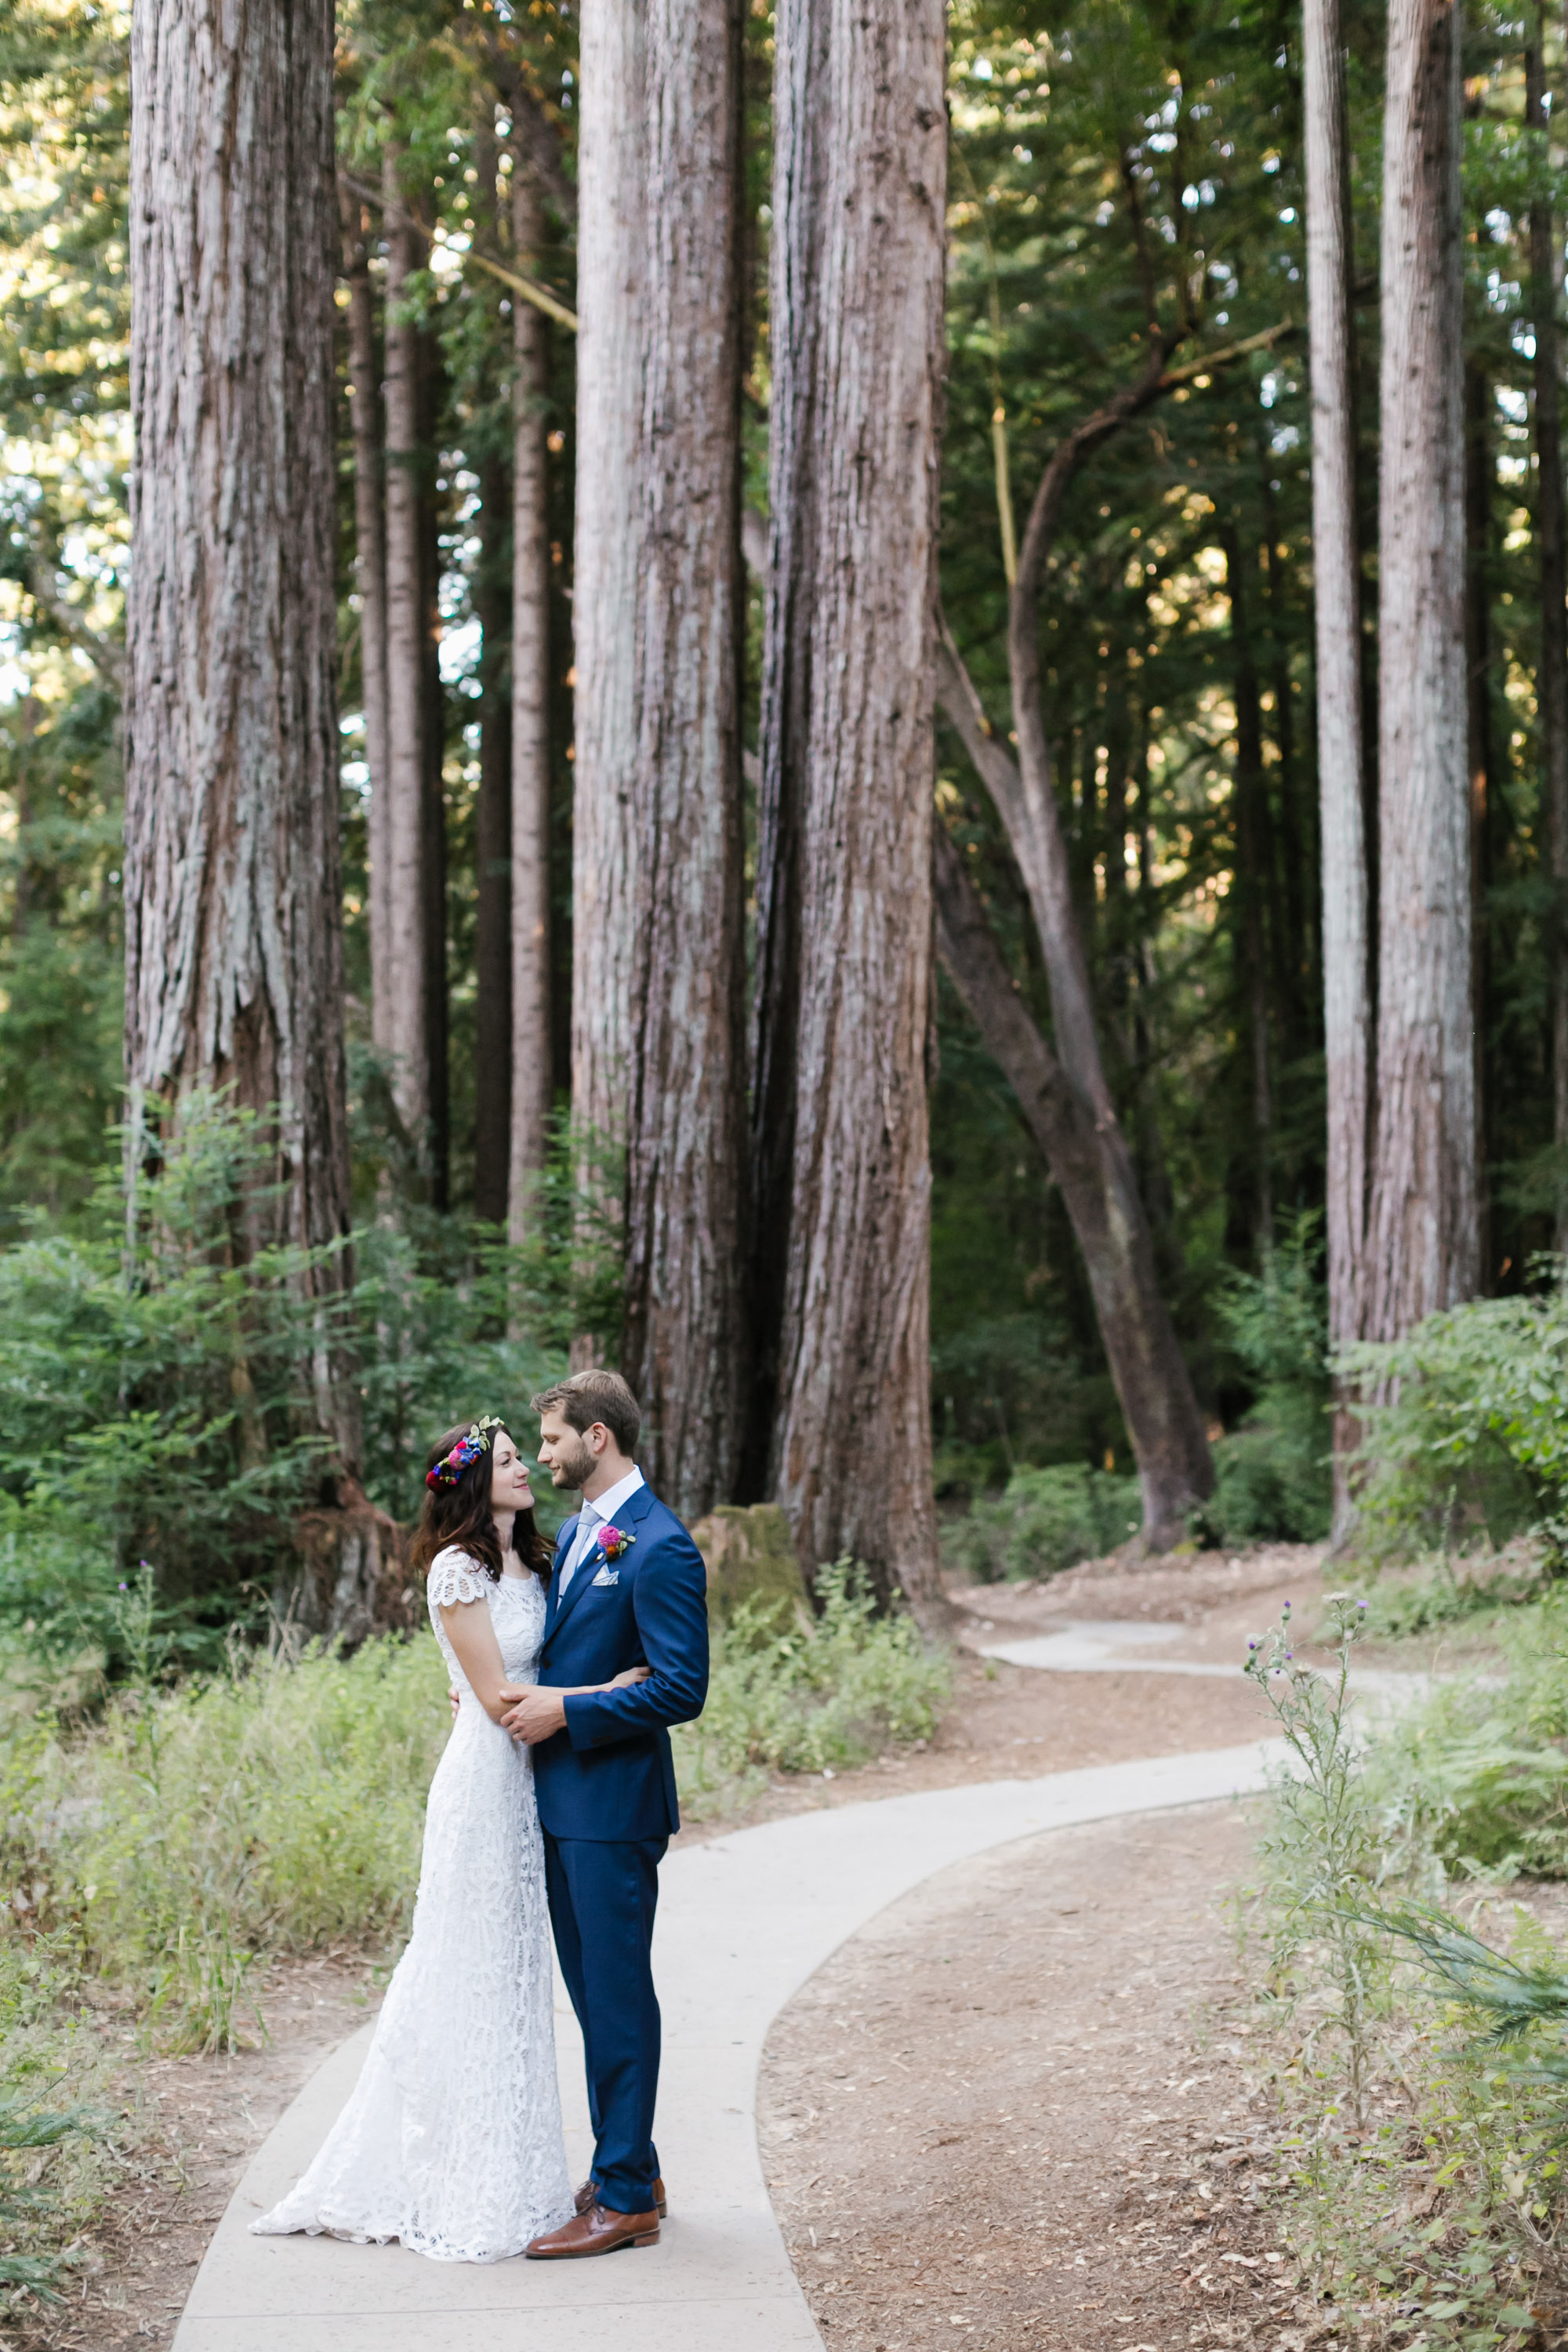 Wedding couple hold each other on winding path through the trees